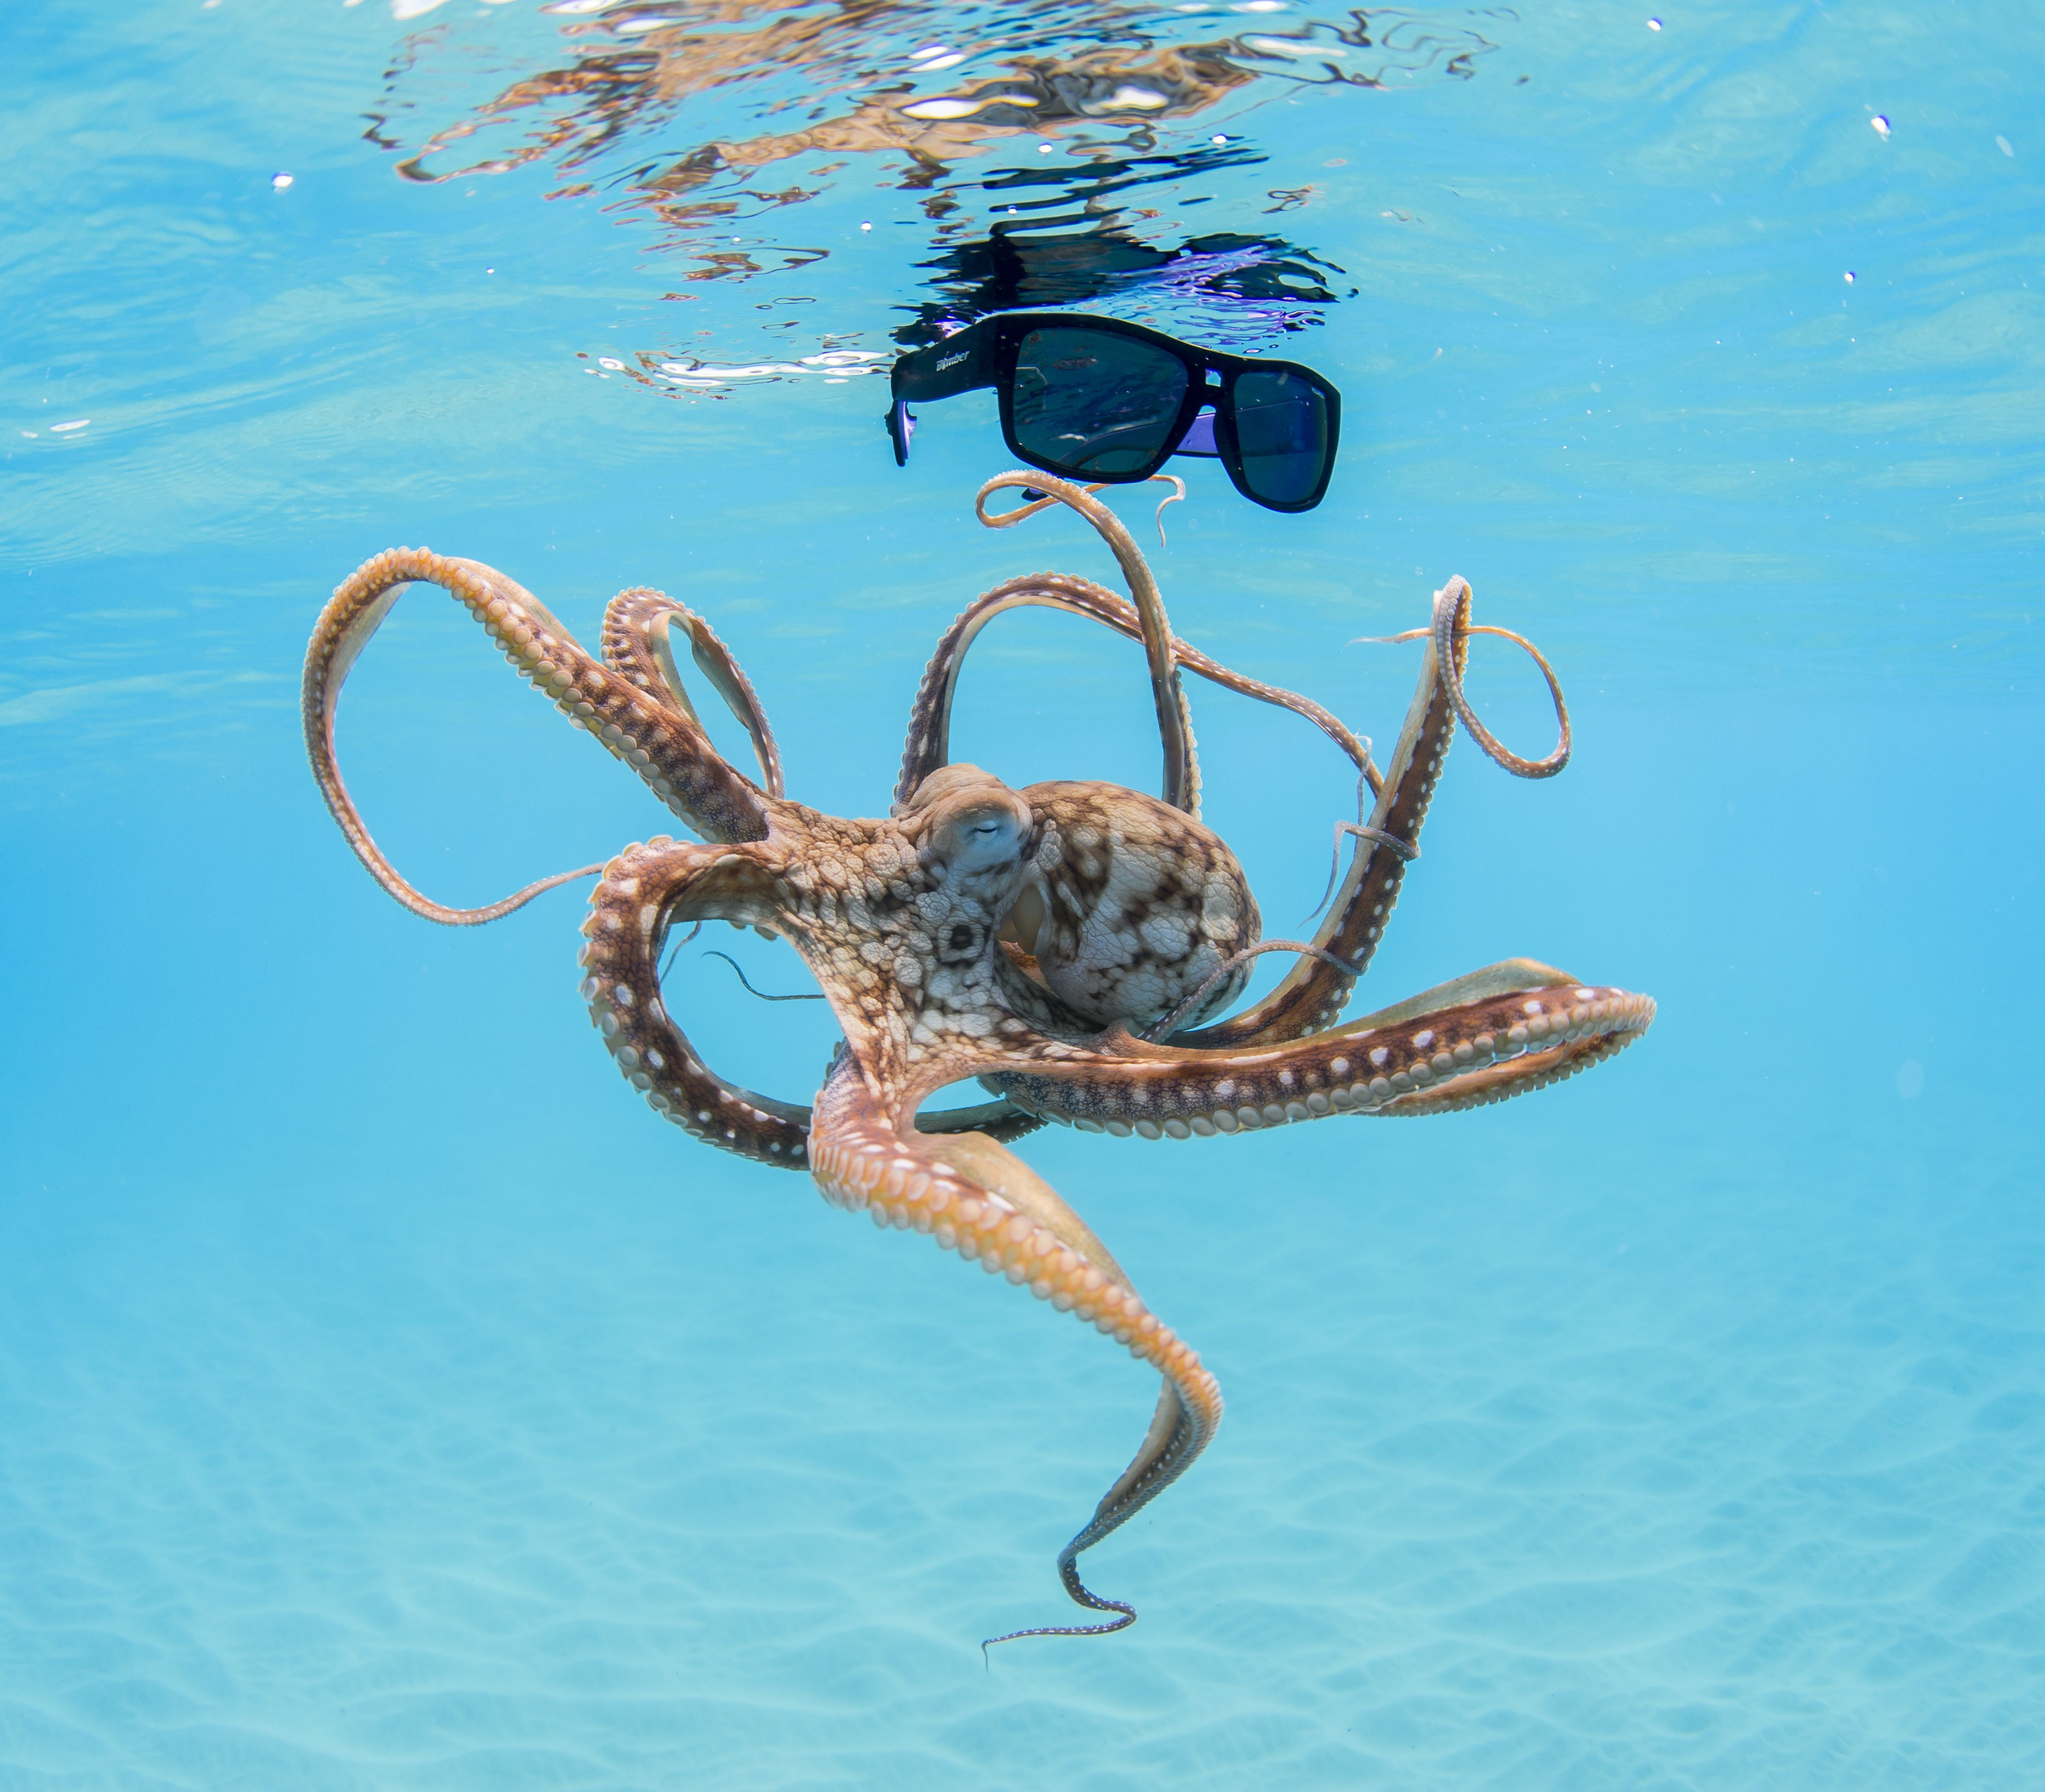 Our sunglasses float with an octopus what do your